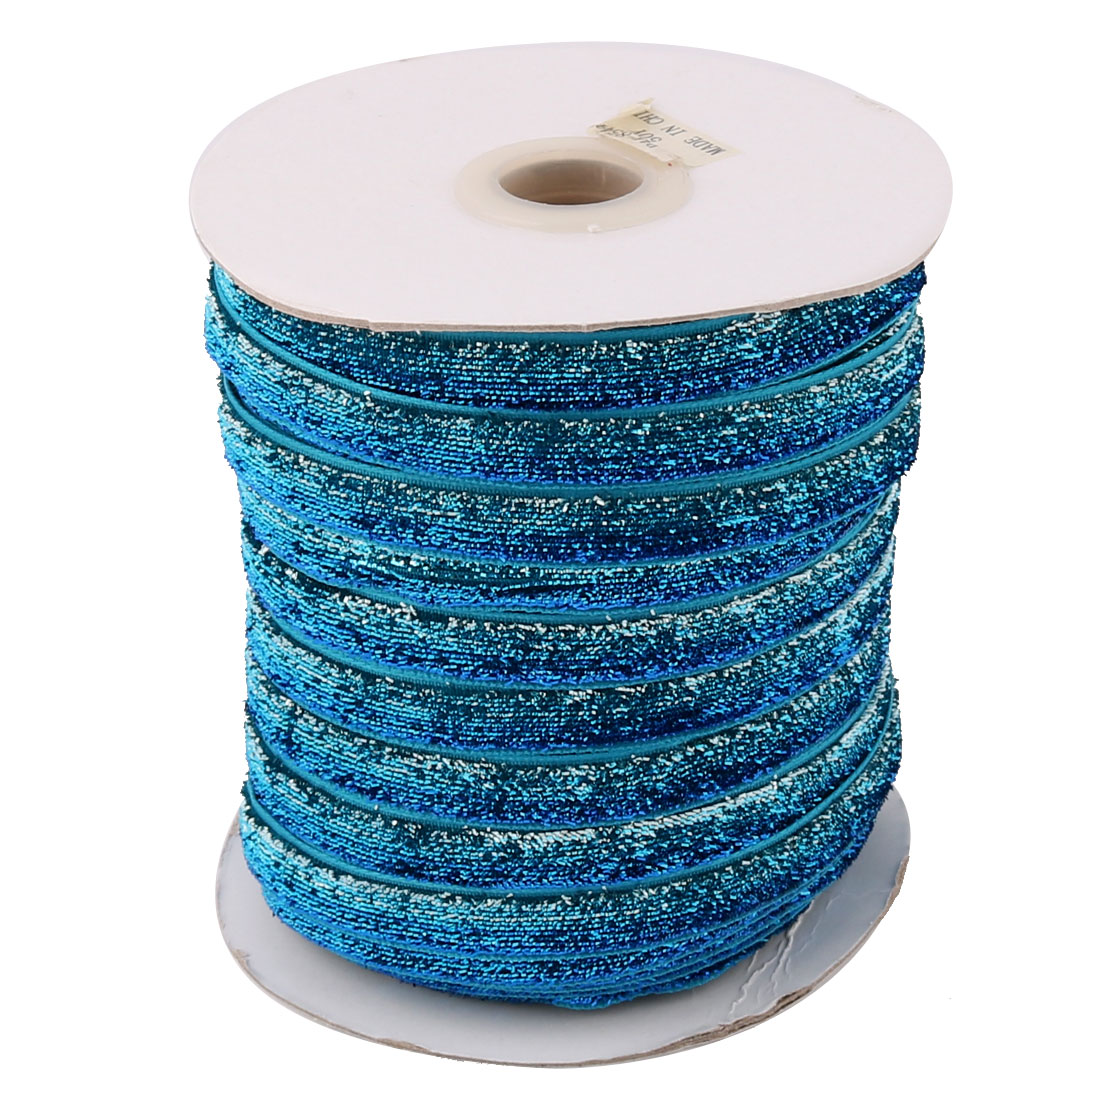 Household Decoration Velvet Sparkle Ribbon Multifunction DIY Gift Blue Teal